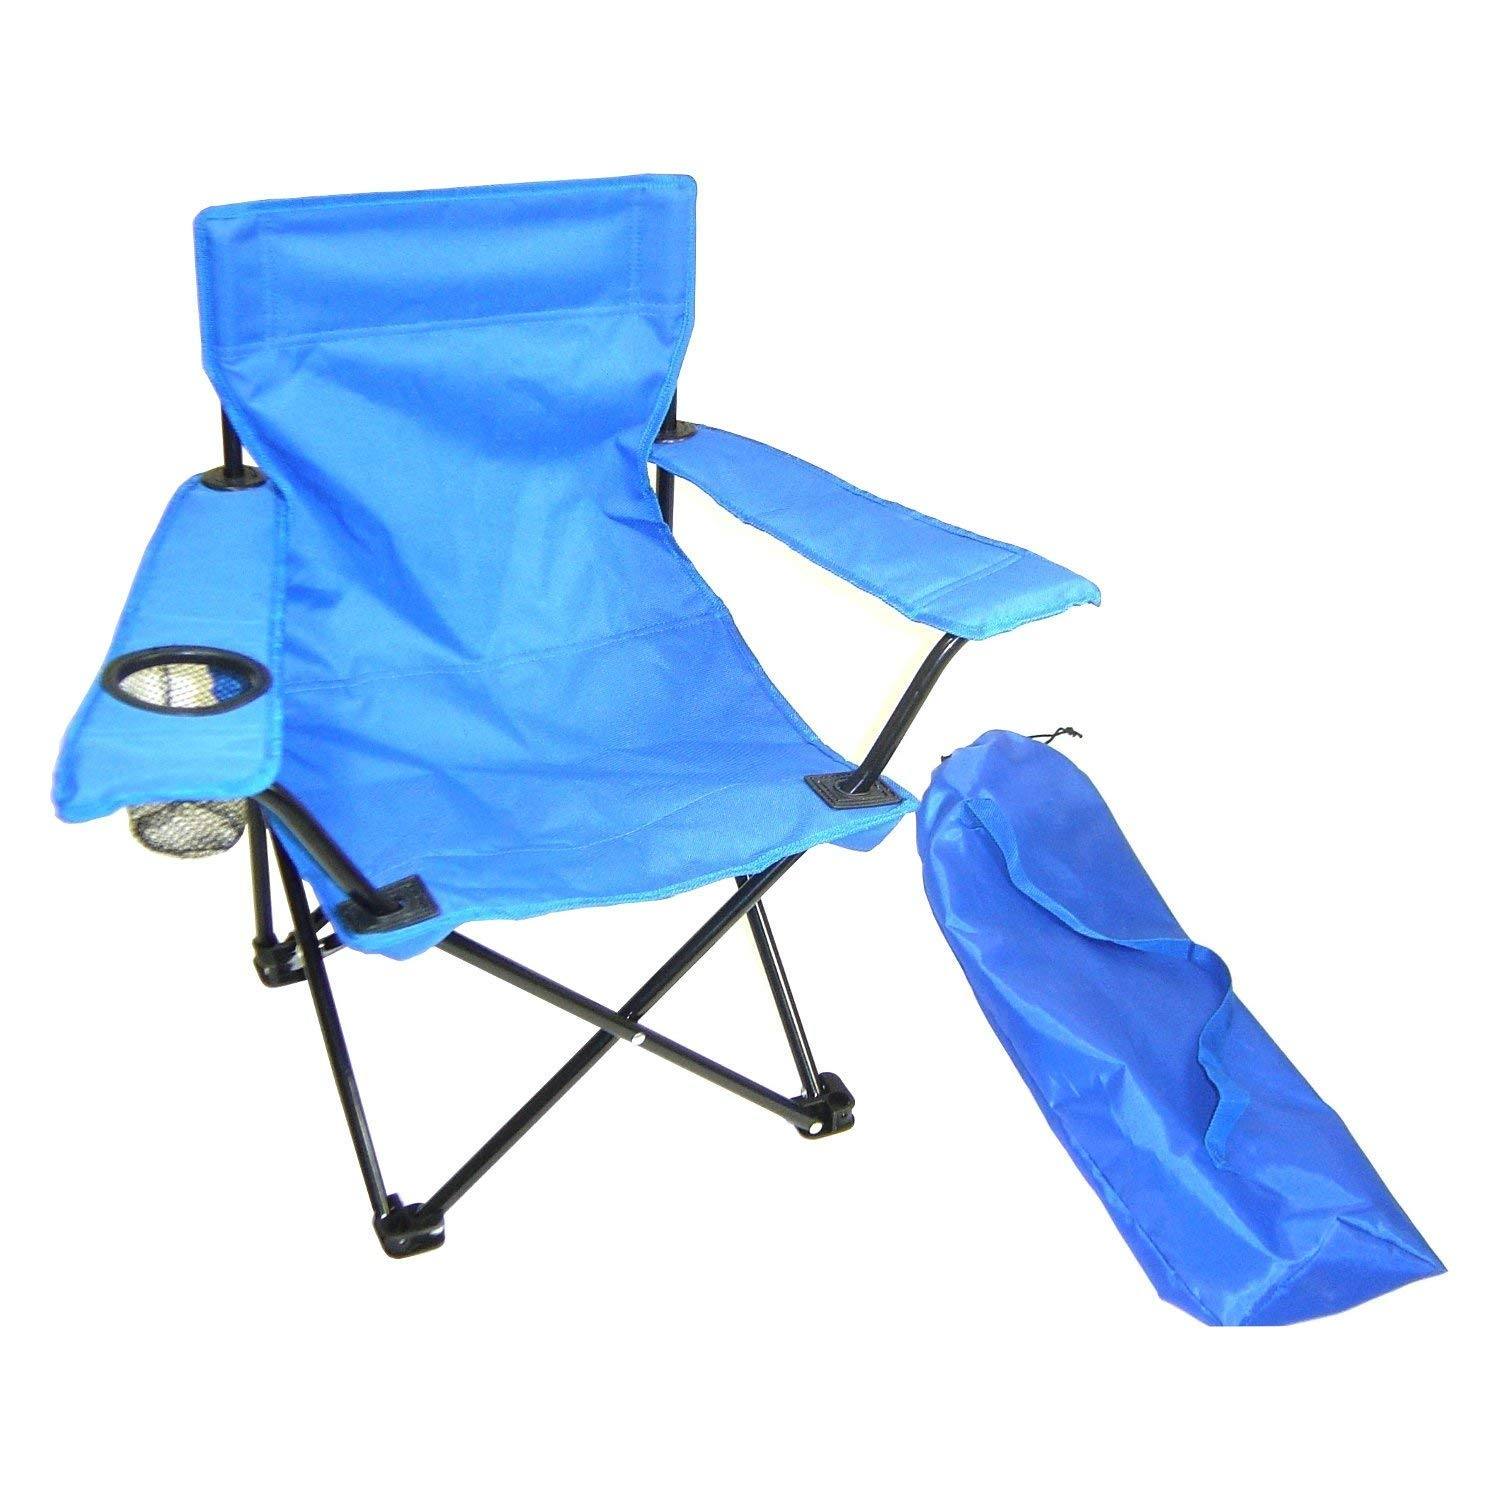 ZY Kids Folding Camp and Lawn Chair, Blue